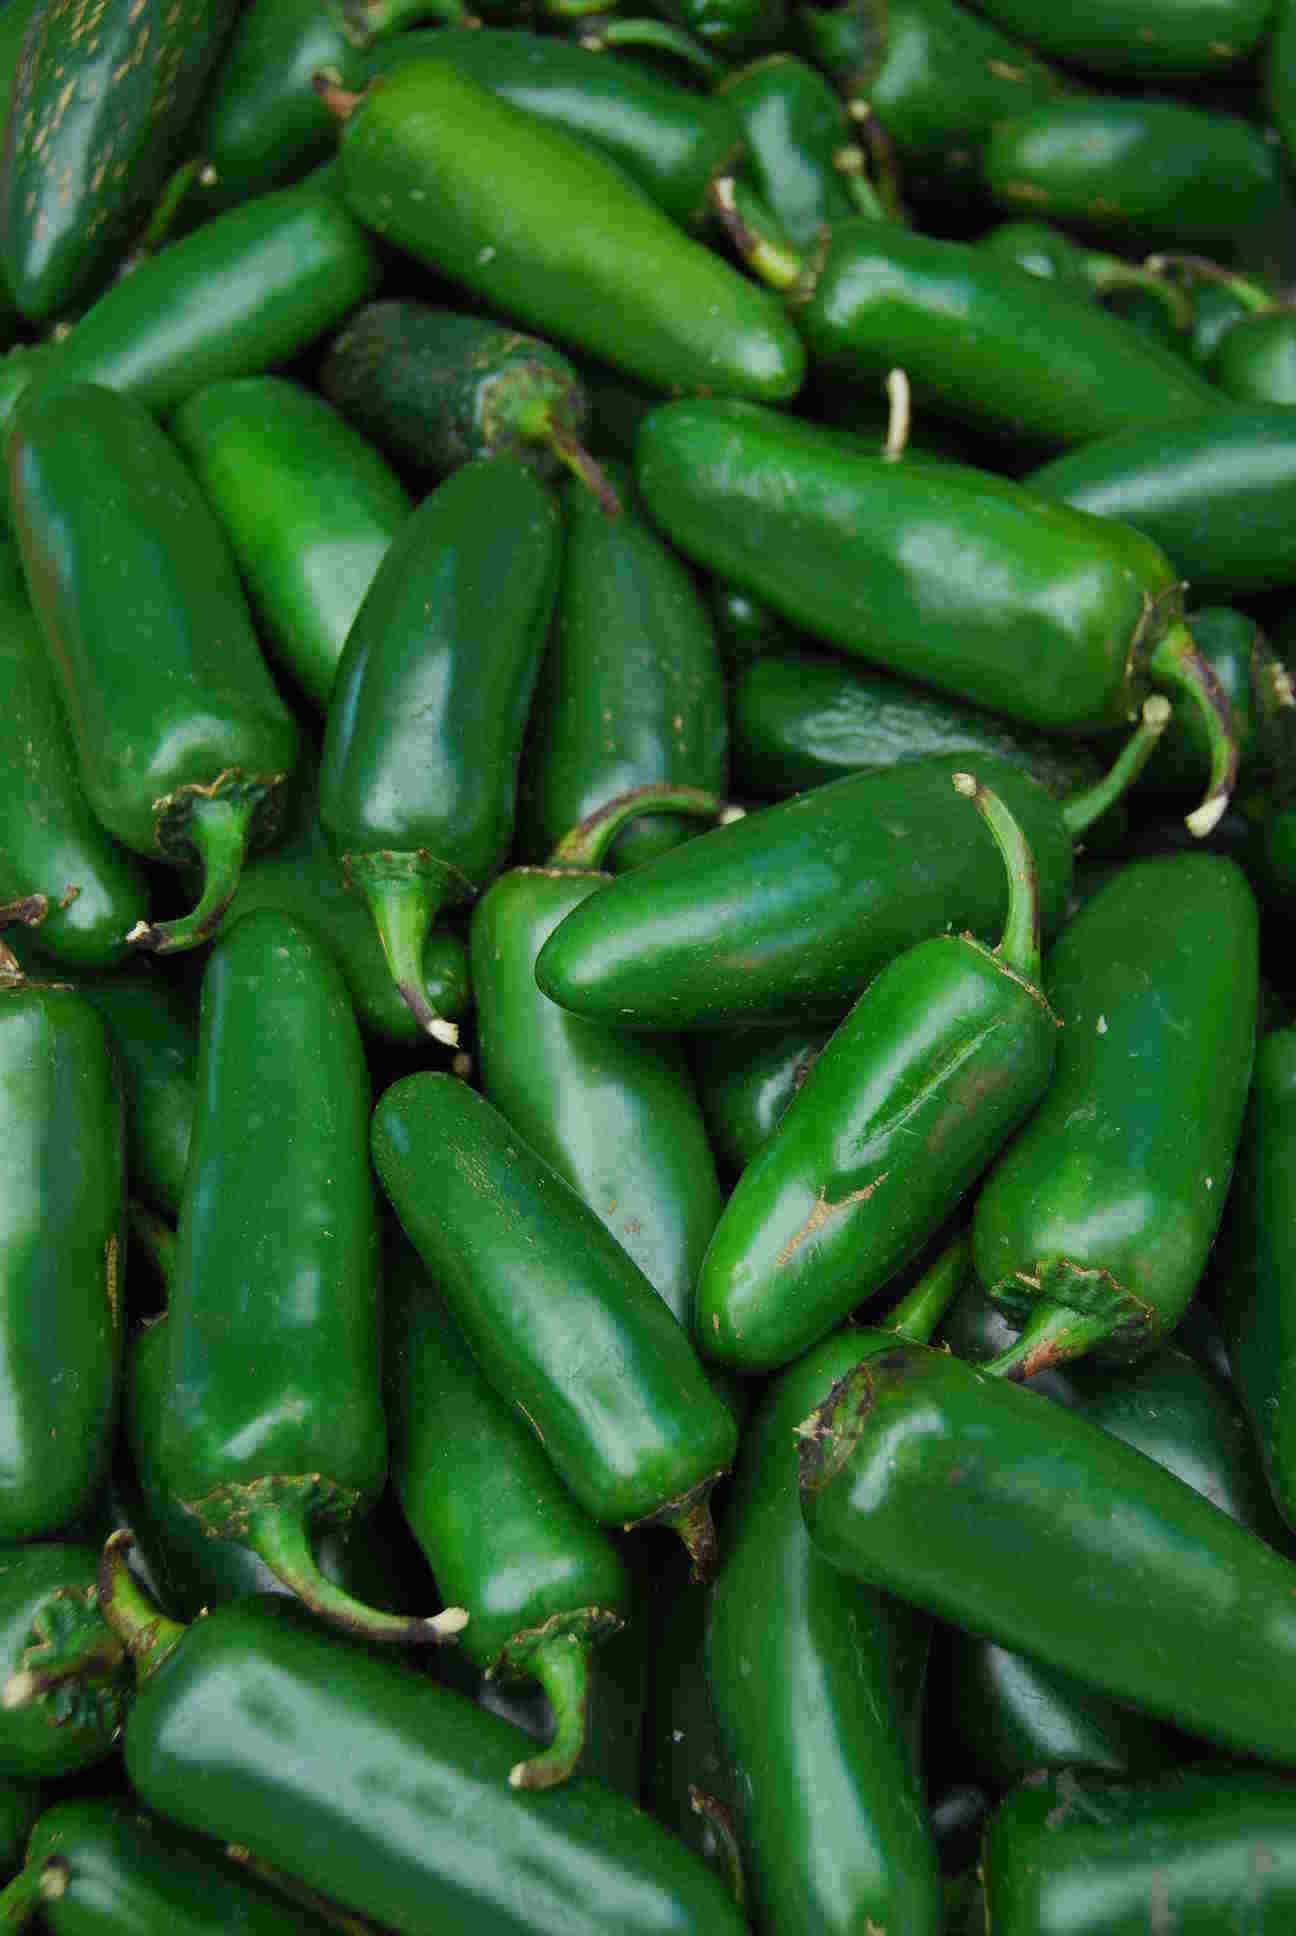 chipotle chiles  the history of chipotle chiles is rich and flavorful - food